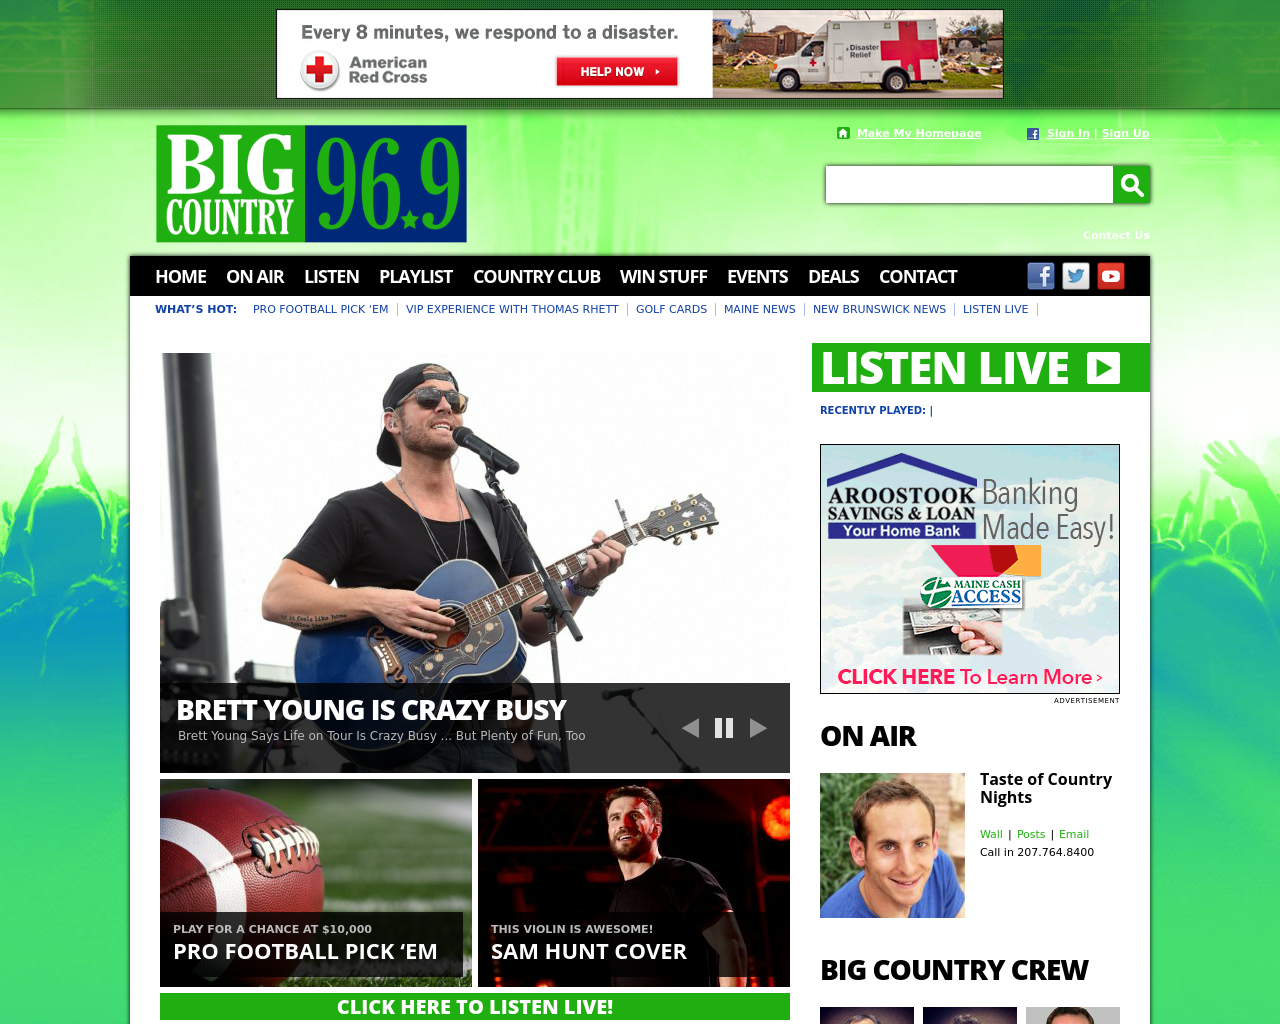 Big-Country-96.9-Advertising-Reviews-Pricing